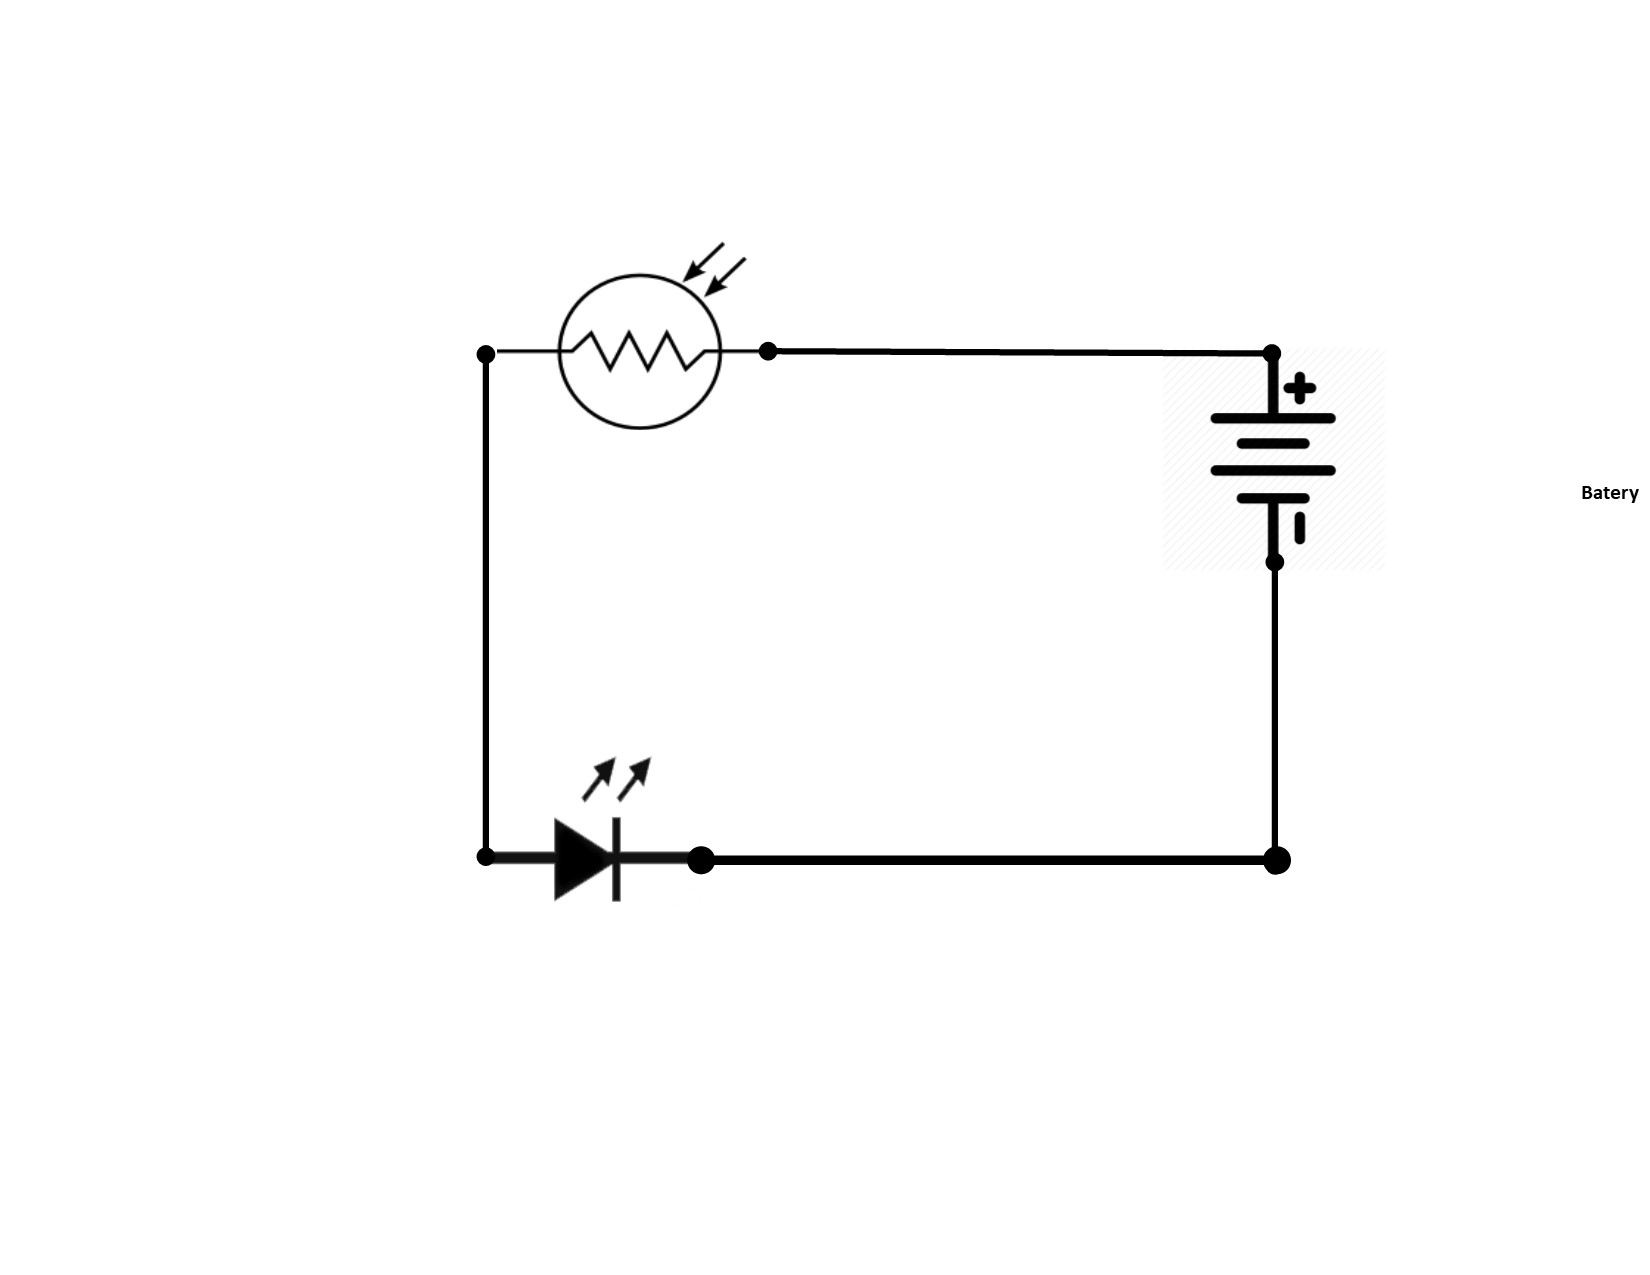 Basic Of Resistor For Beginners Electronics Video Course Urdu Variable Circuit Diagram Potentiometer Project With Trimmer And Photo